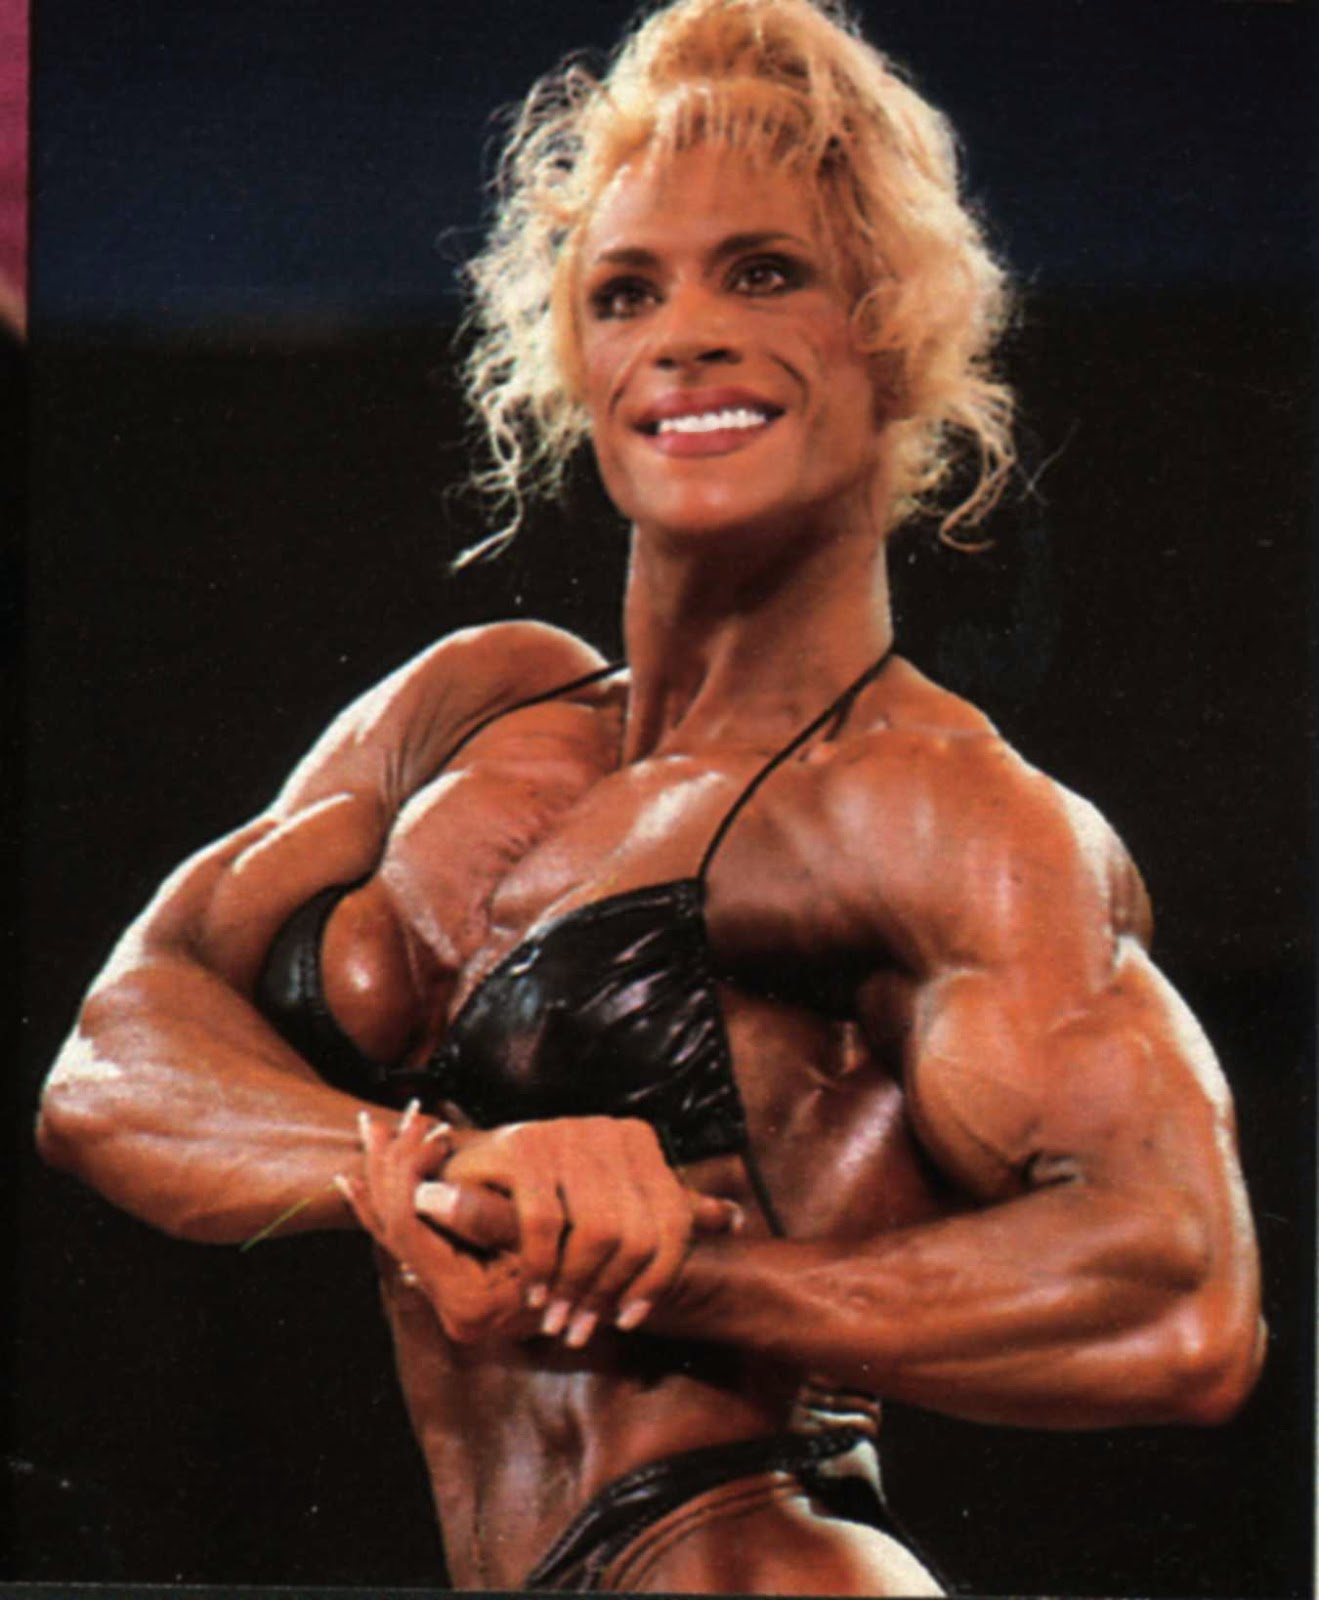 The Best Female Bodybuilders in The World - The Best